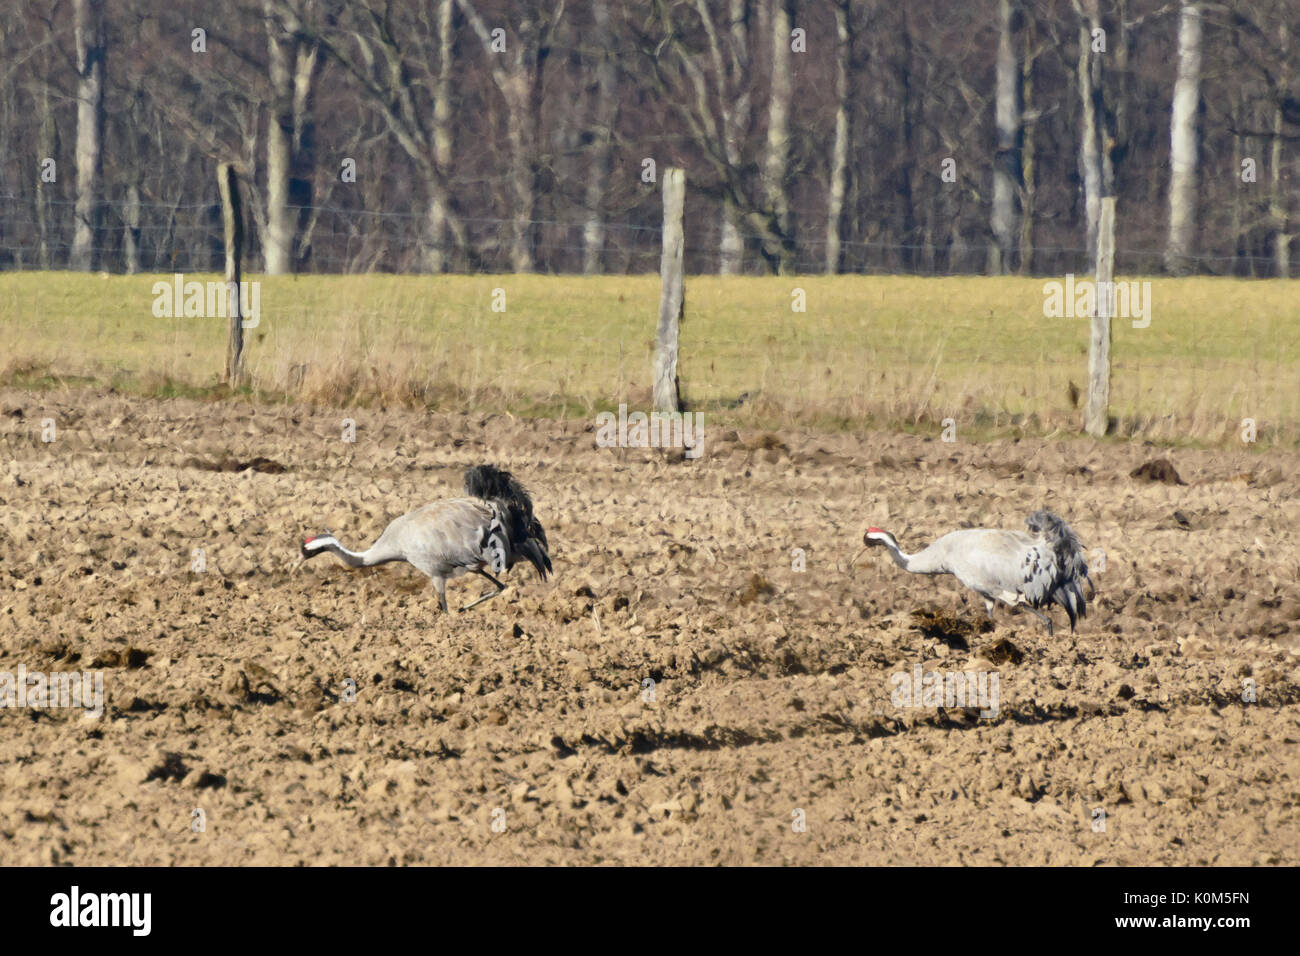 Common cranes (Grus grus) on a field, Common cranes (Grus grus) sur un champ, Brandebourg, Allemagne, Germany - Stock Image